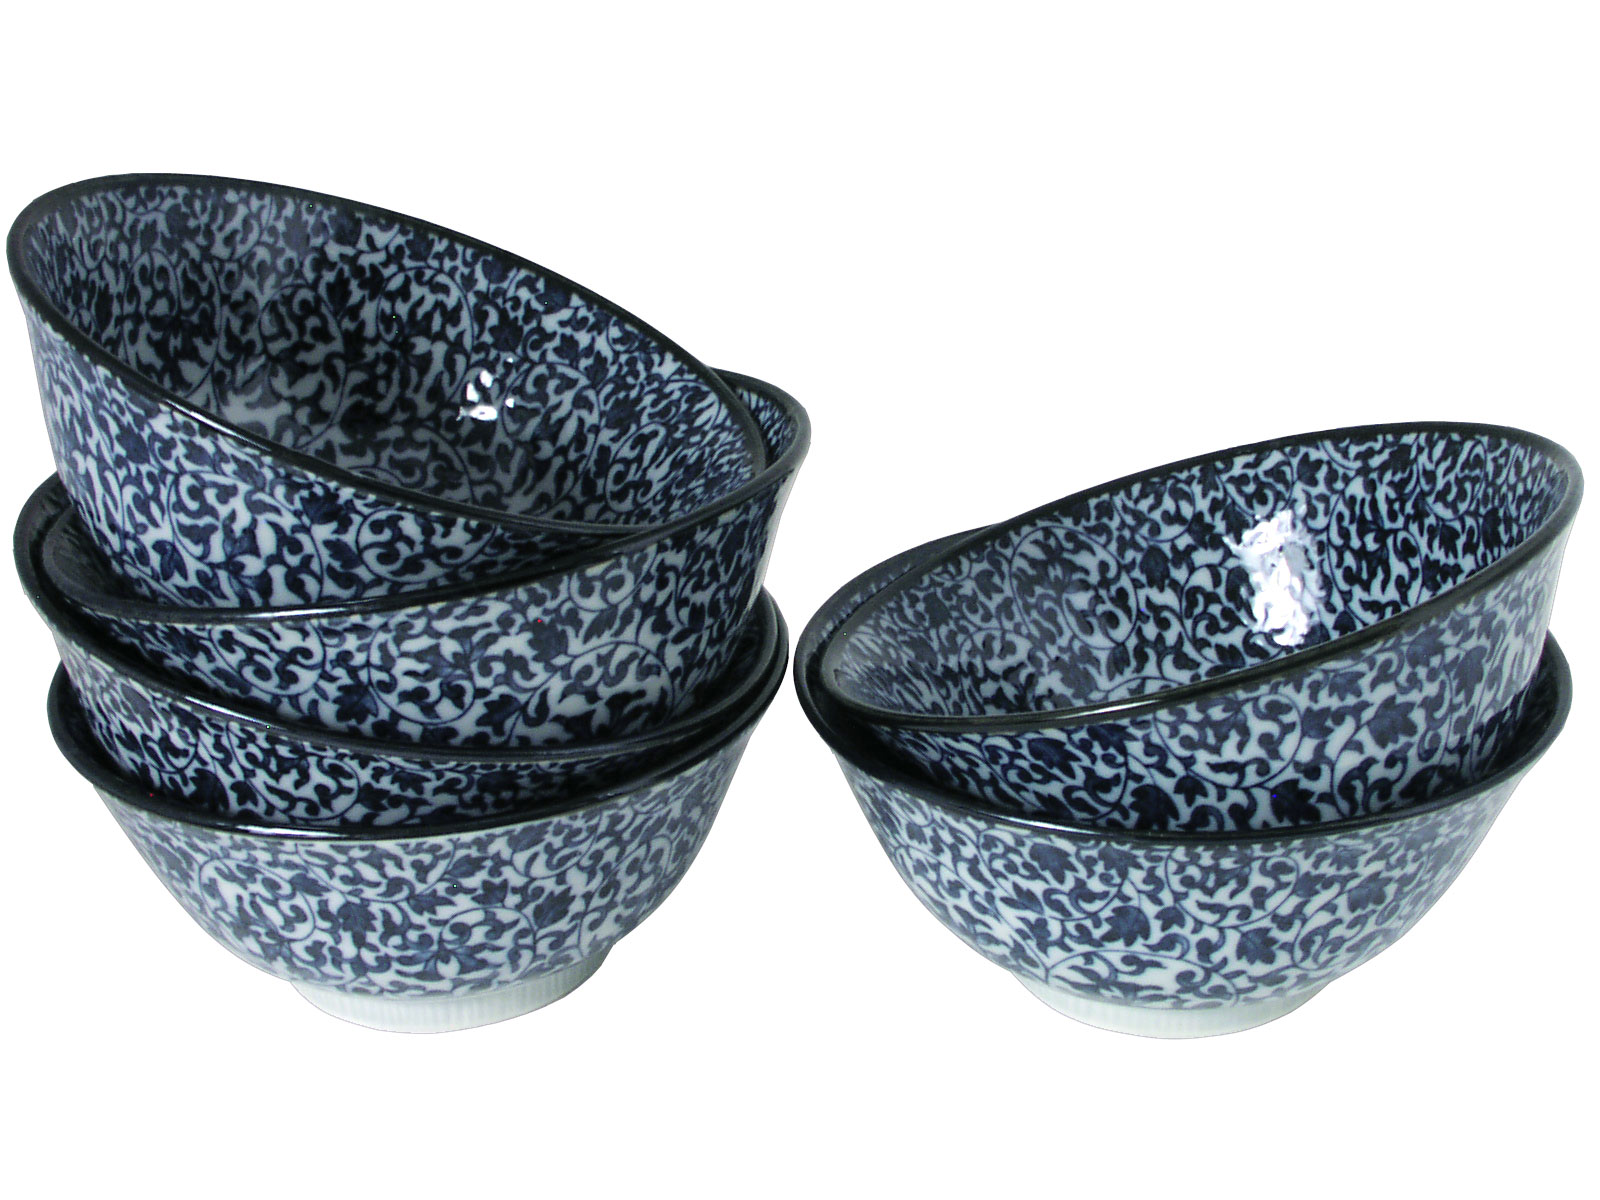 Intricate Blue And White Vine Motif Japanese Cereal Bowl